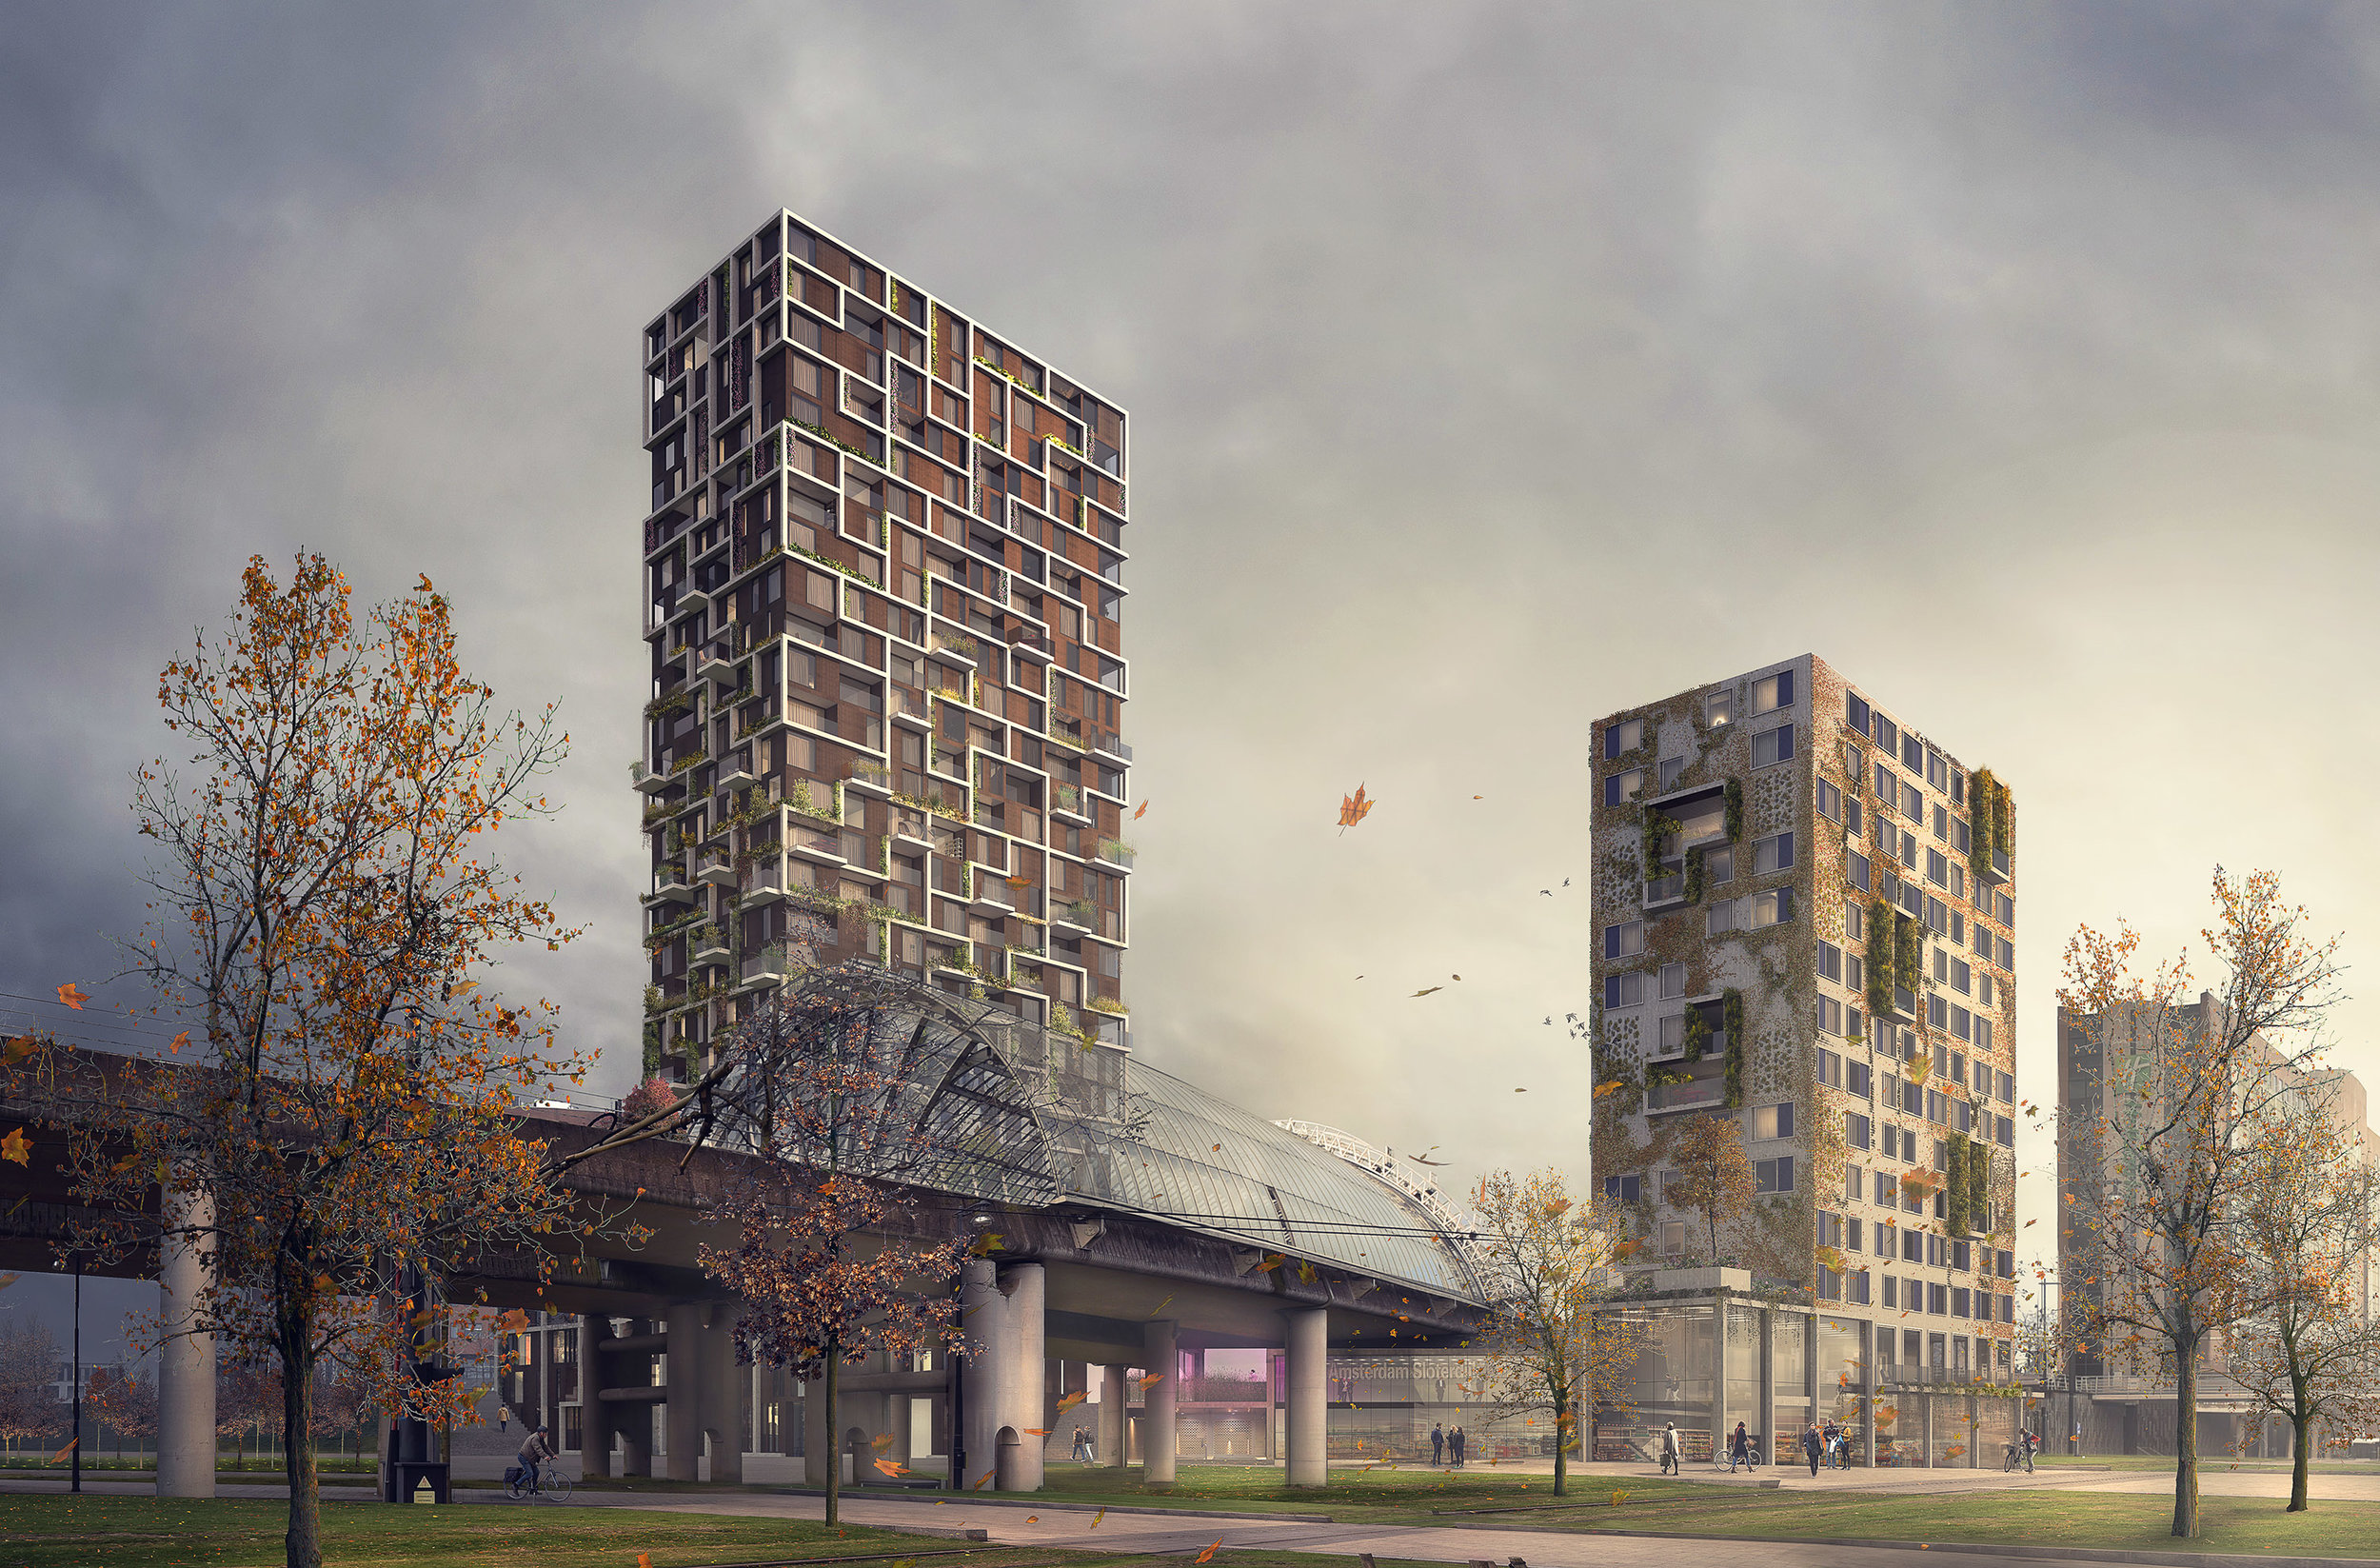 Kaval O. Competition entry of tower project in Amsterdam, NL.